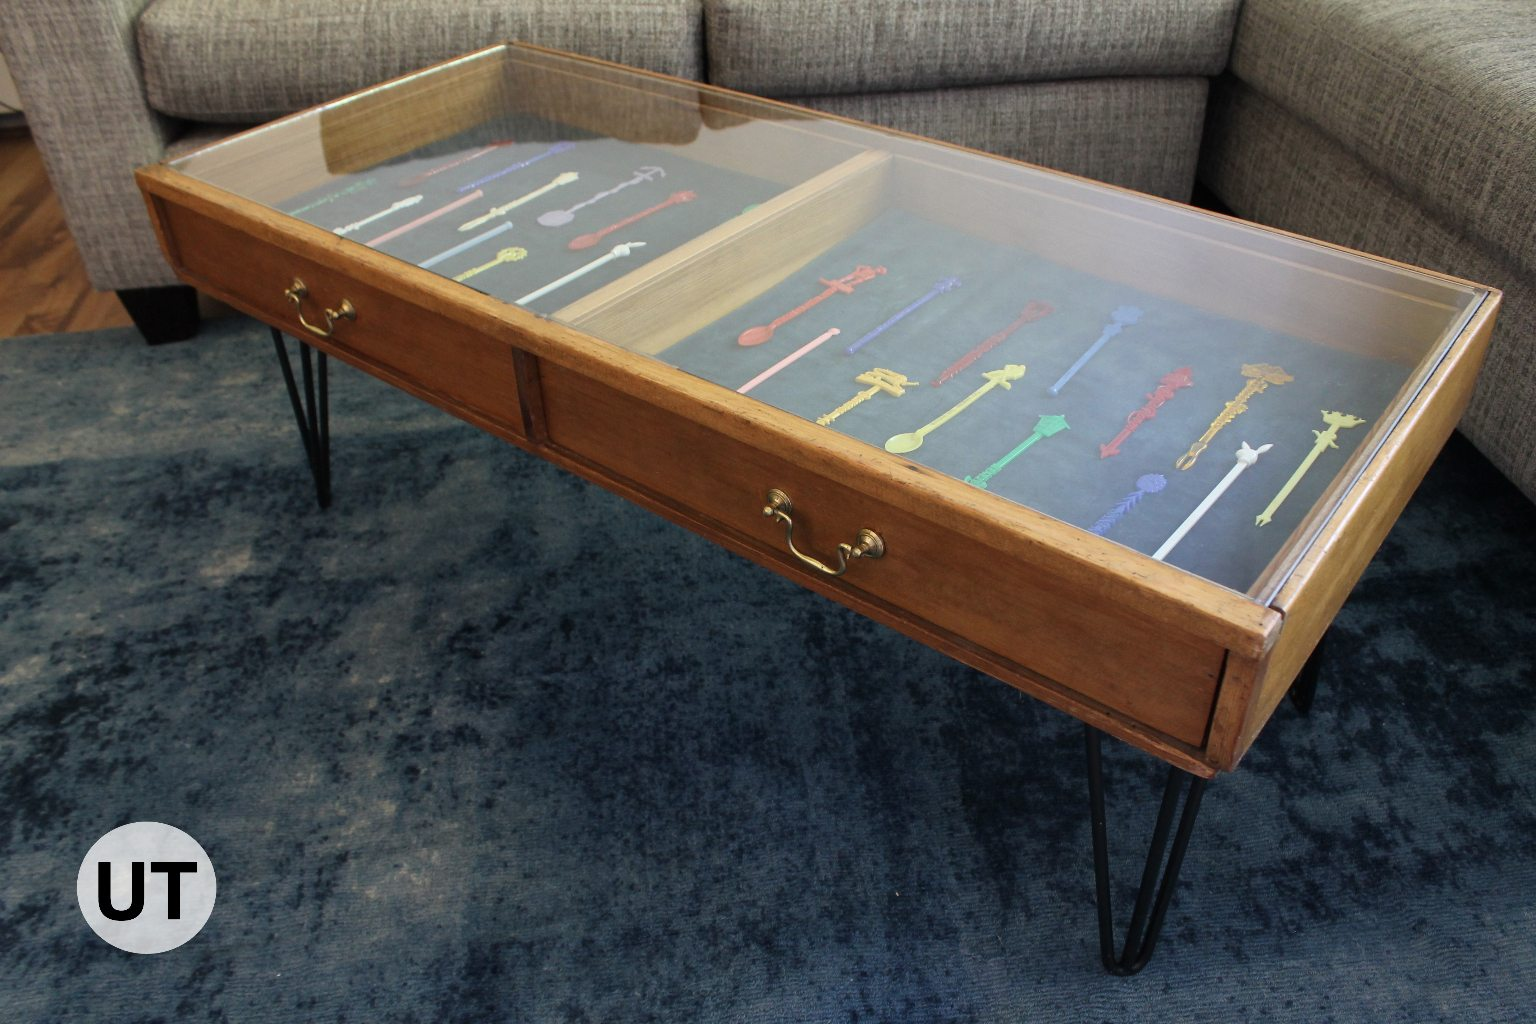 High Quality Upcycled Coffee Table | Upcycle That